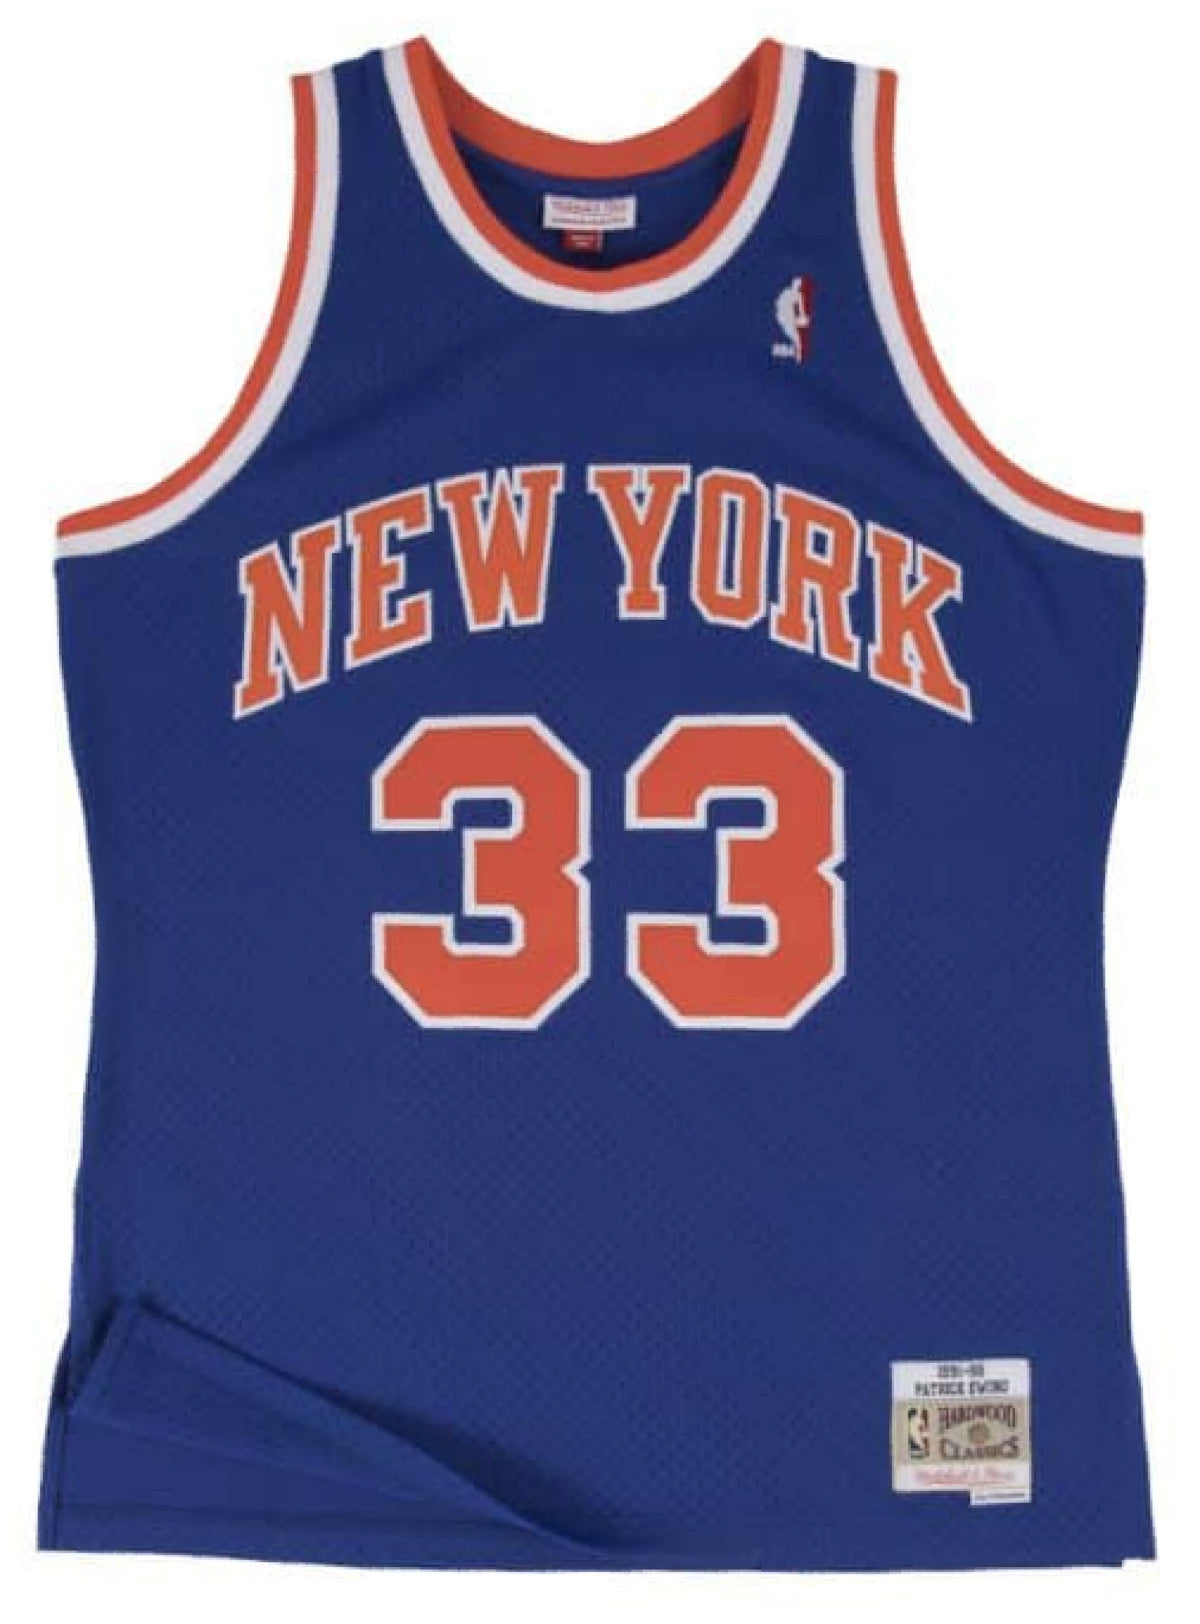 Mitchell & Ness Kids Jersey - New York - Blue